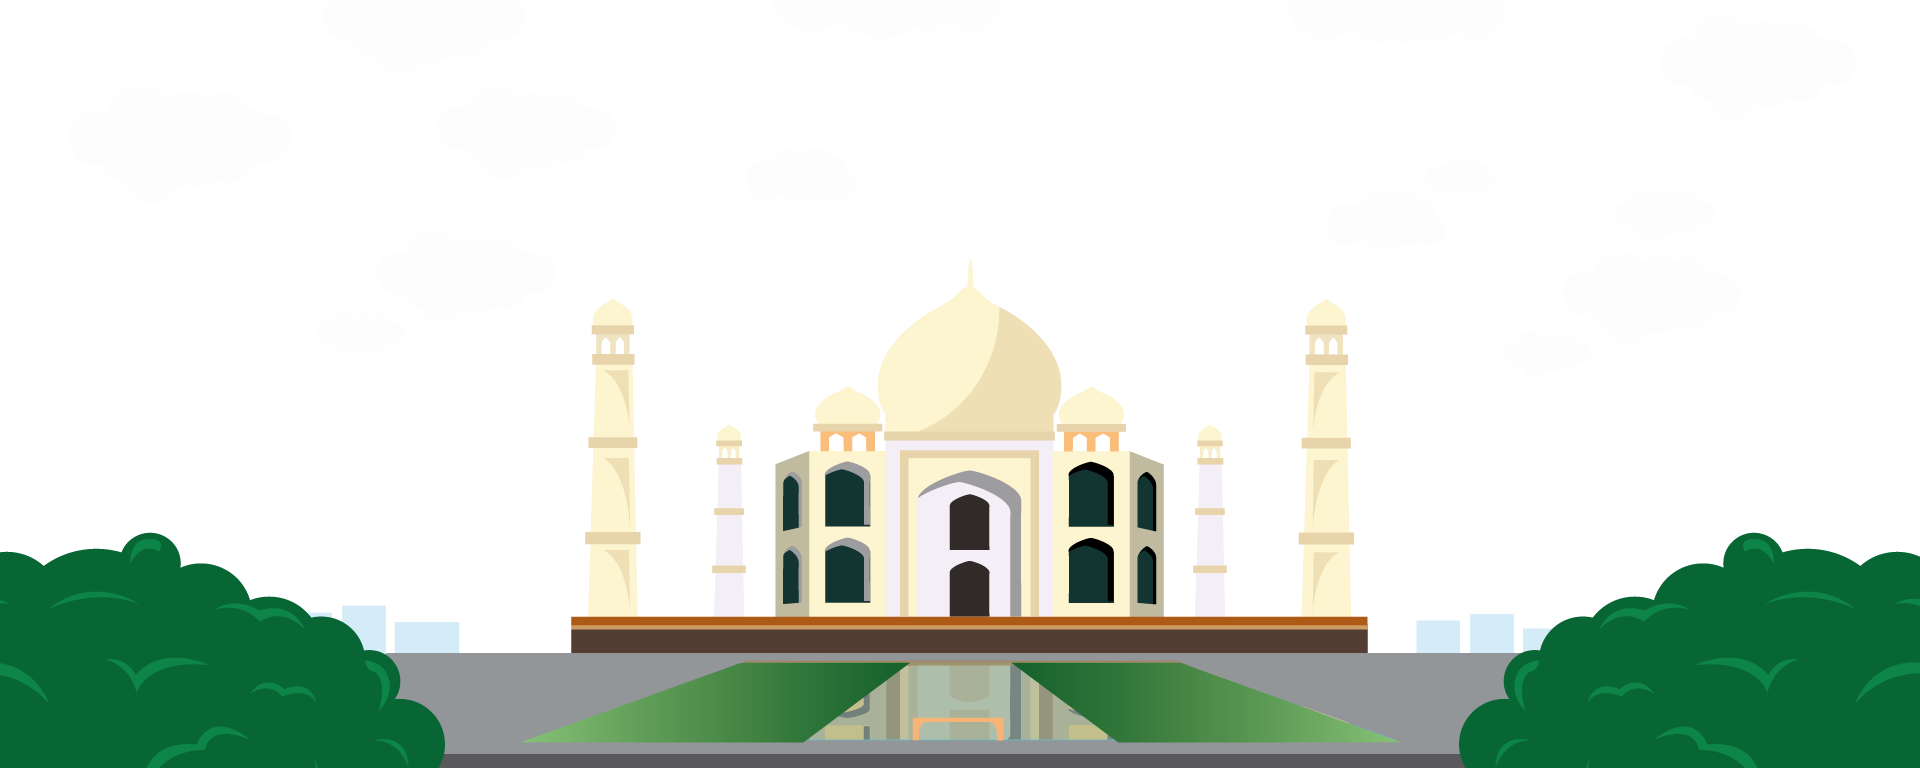 Mosque clipart gate. Cewe top most instagrammed